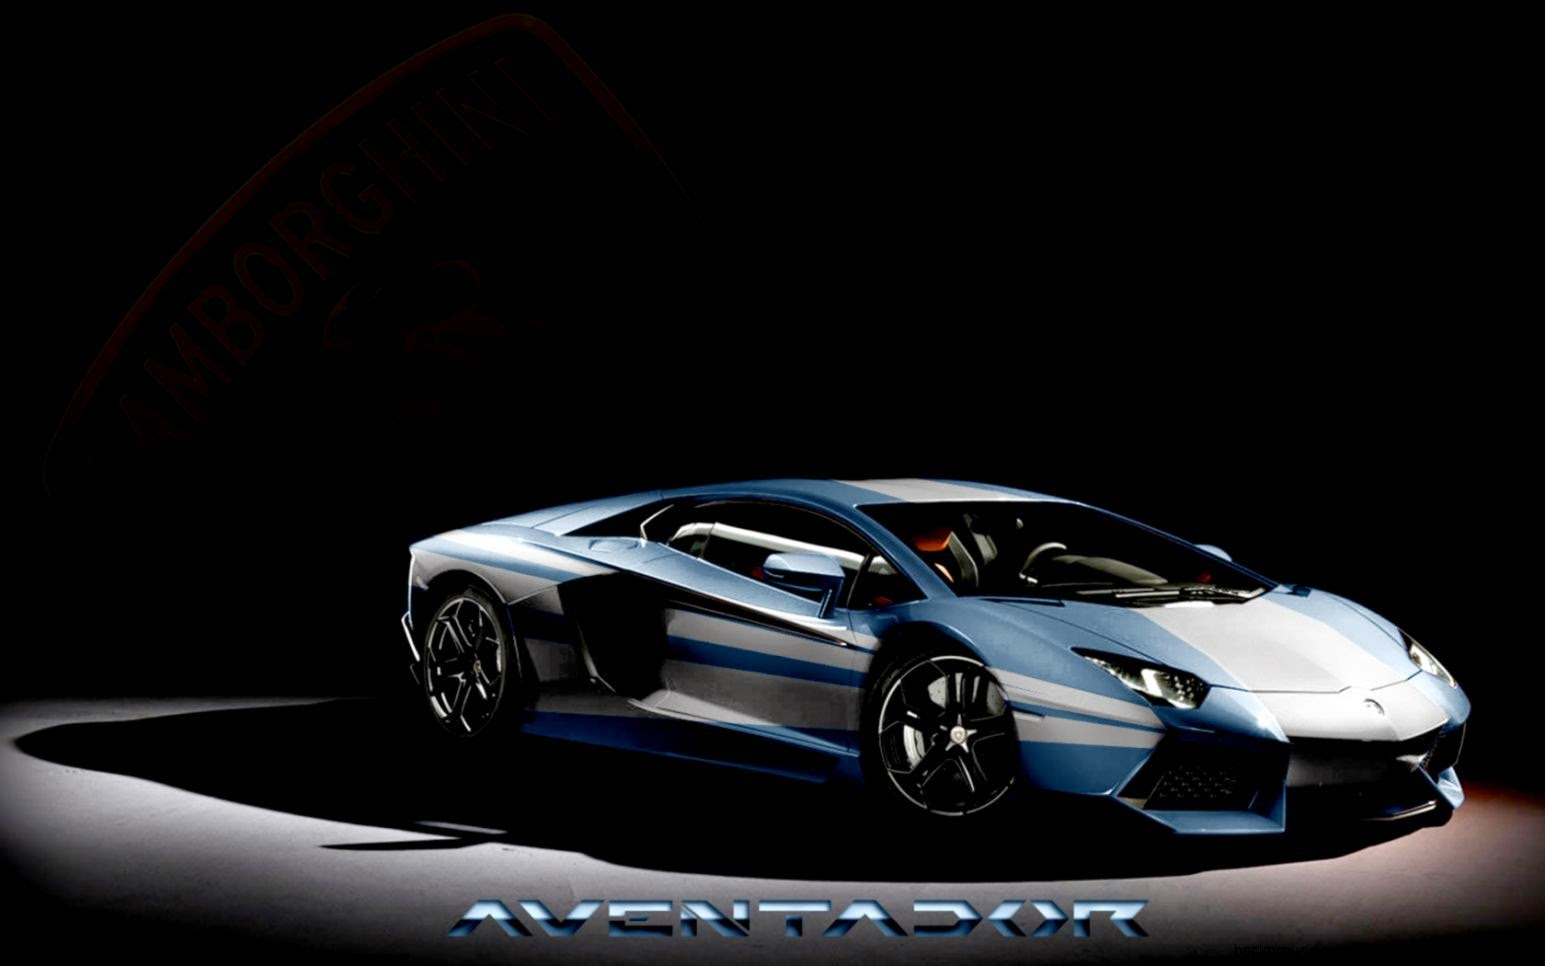 Lamborghini Aventador Full Wallpapers Hd | Background ...